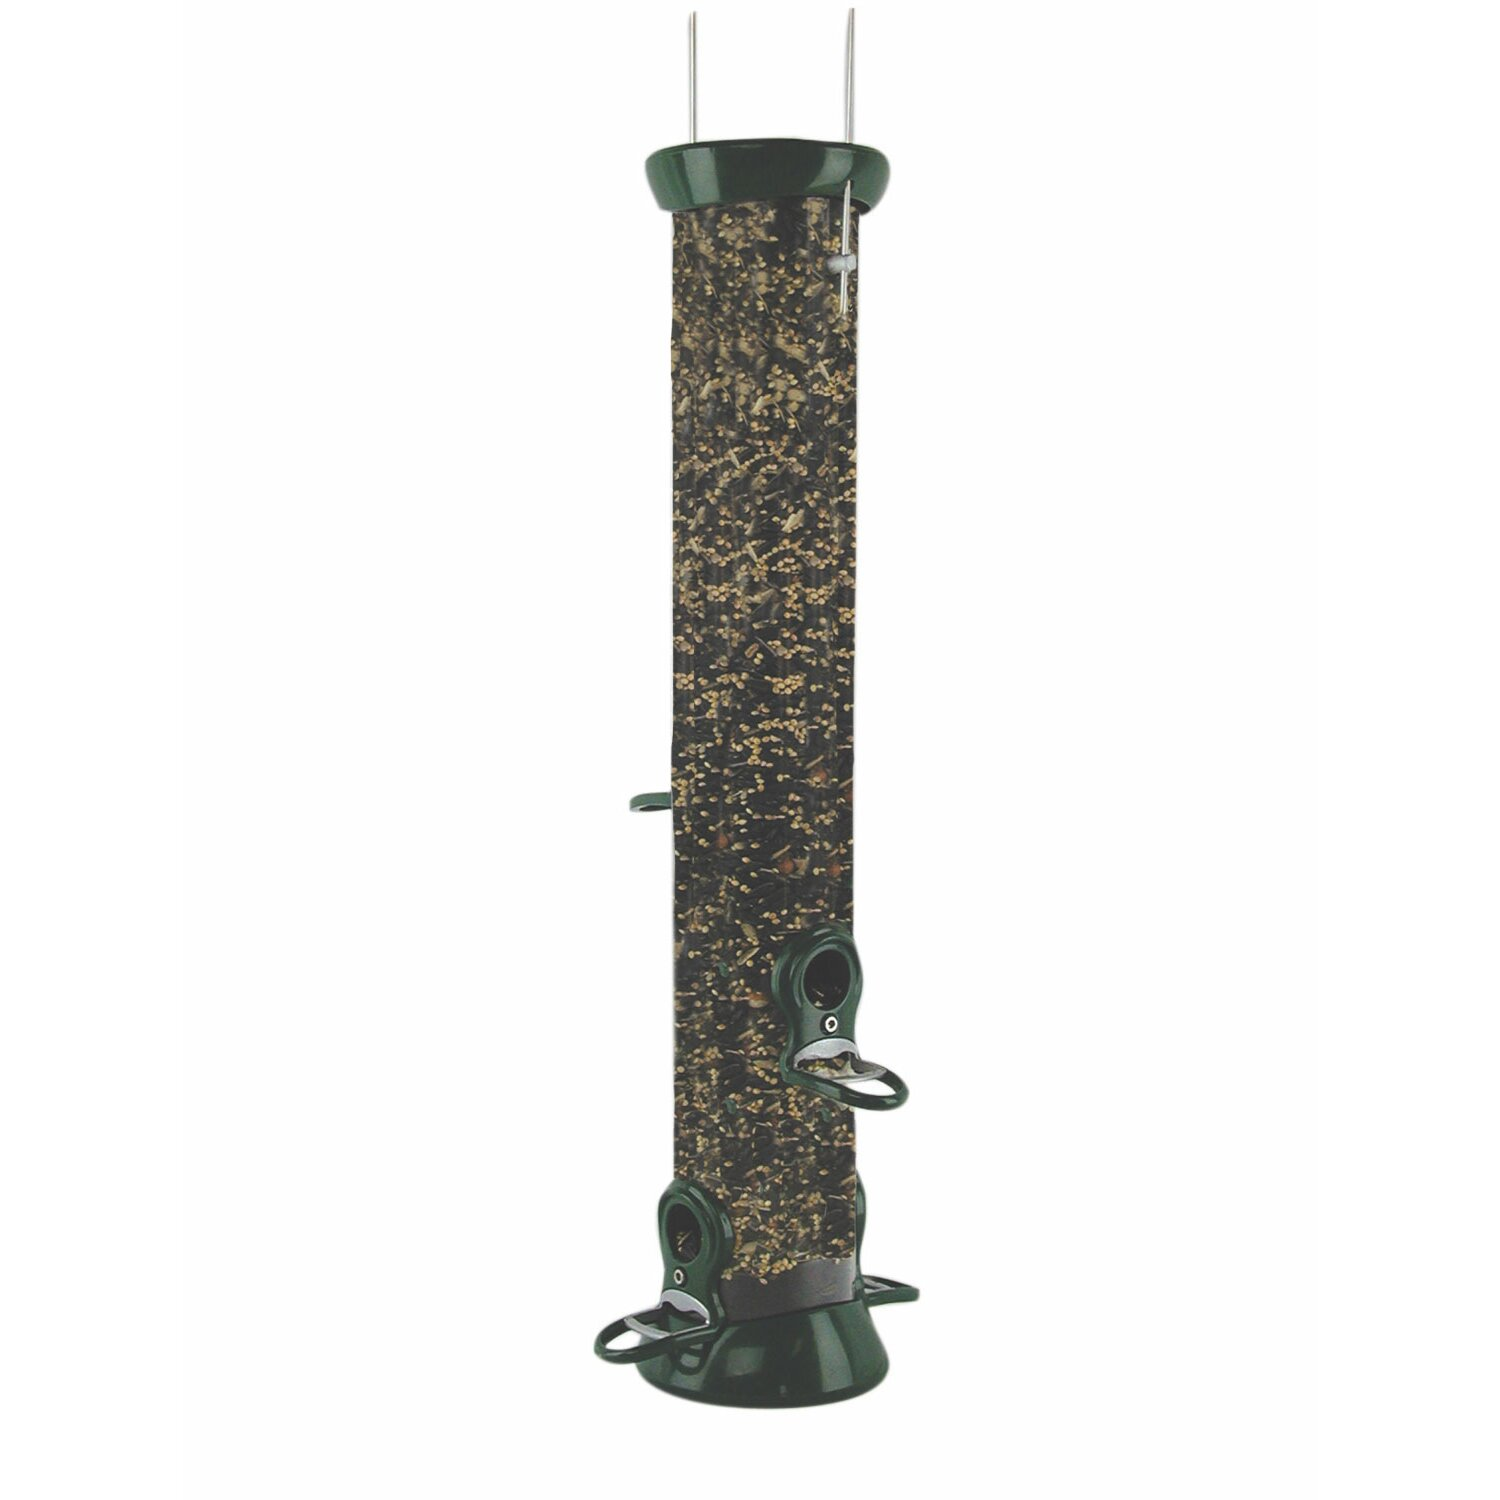 50 Quart 4 Perches Clever Clean Tube Bird Feeder by Birds Choice